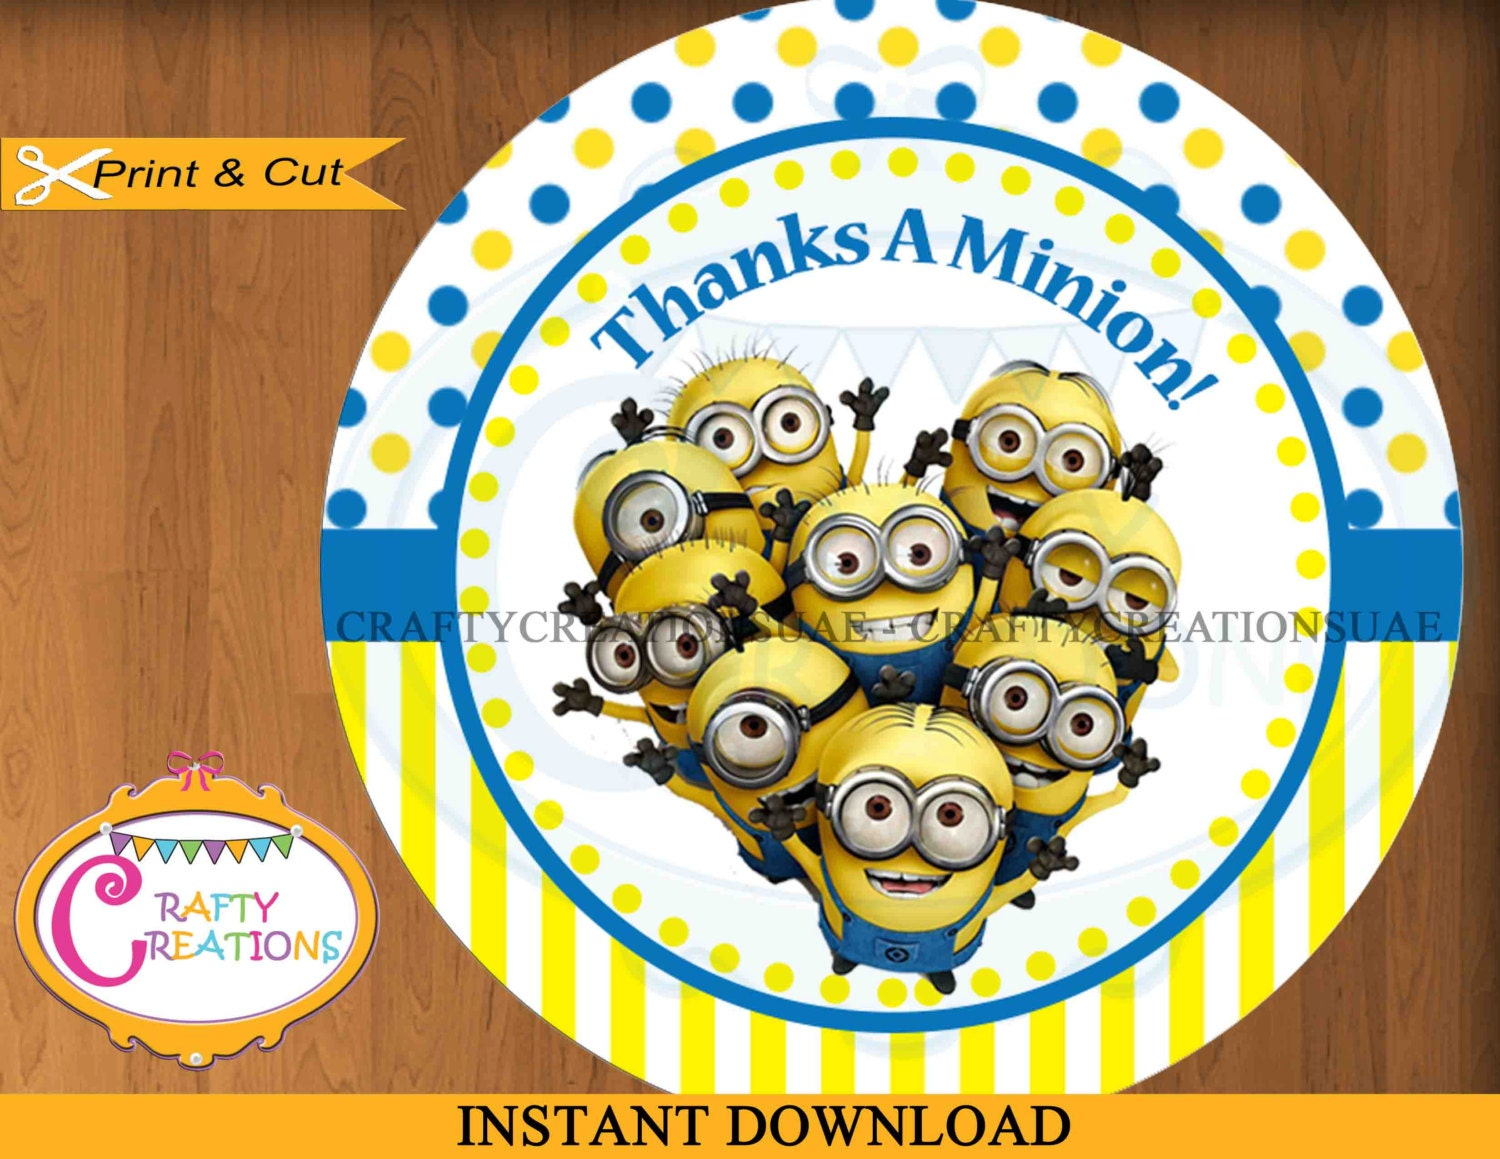 Minions Favor Tag   Despicable Me   Thanks A Minion   Labels   Party Favors    Birthday   Printable   INSTANT DOWNLOAD   CraftyCreationsUAE